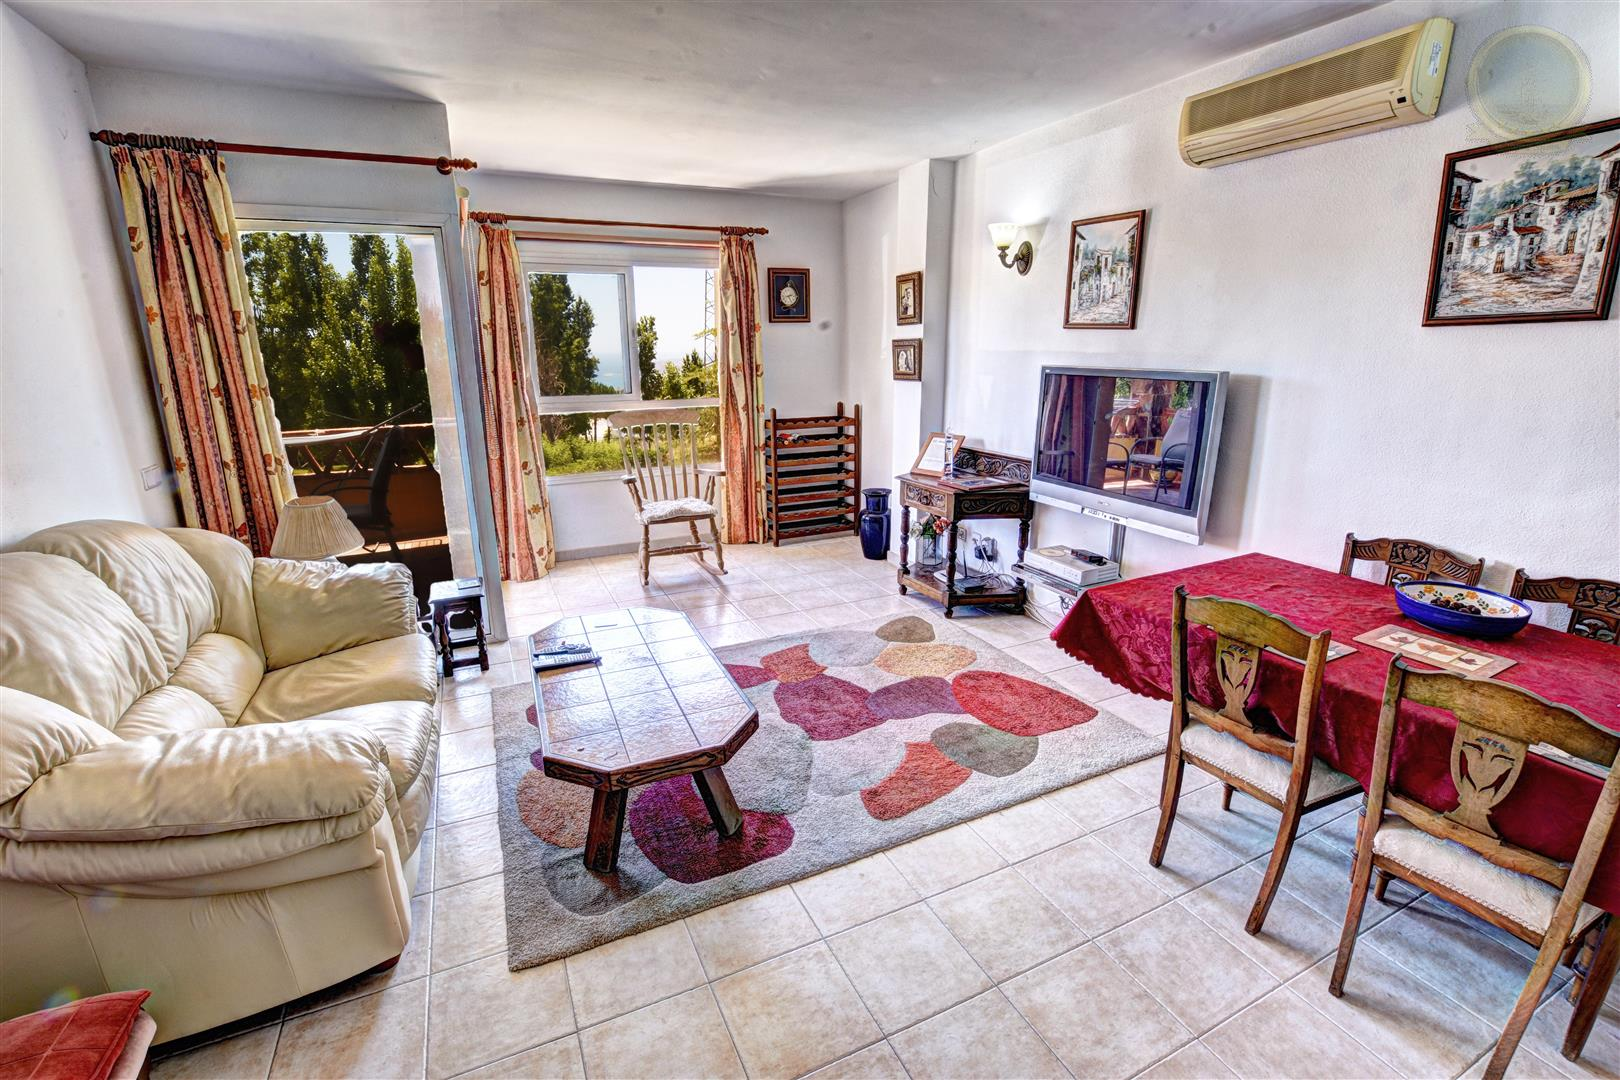 Apartment for Sale in Reserva Higueron - Lounge